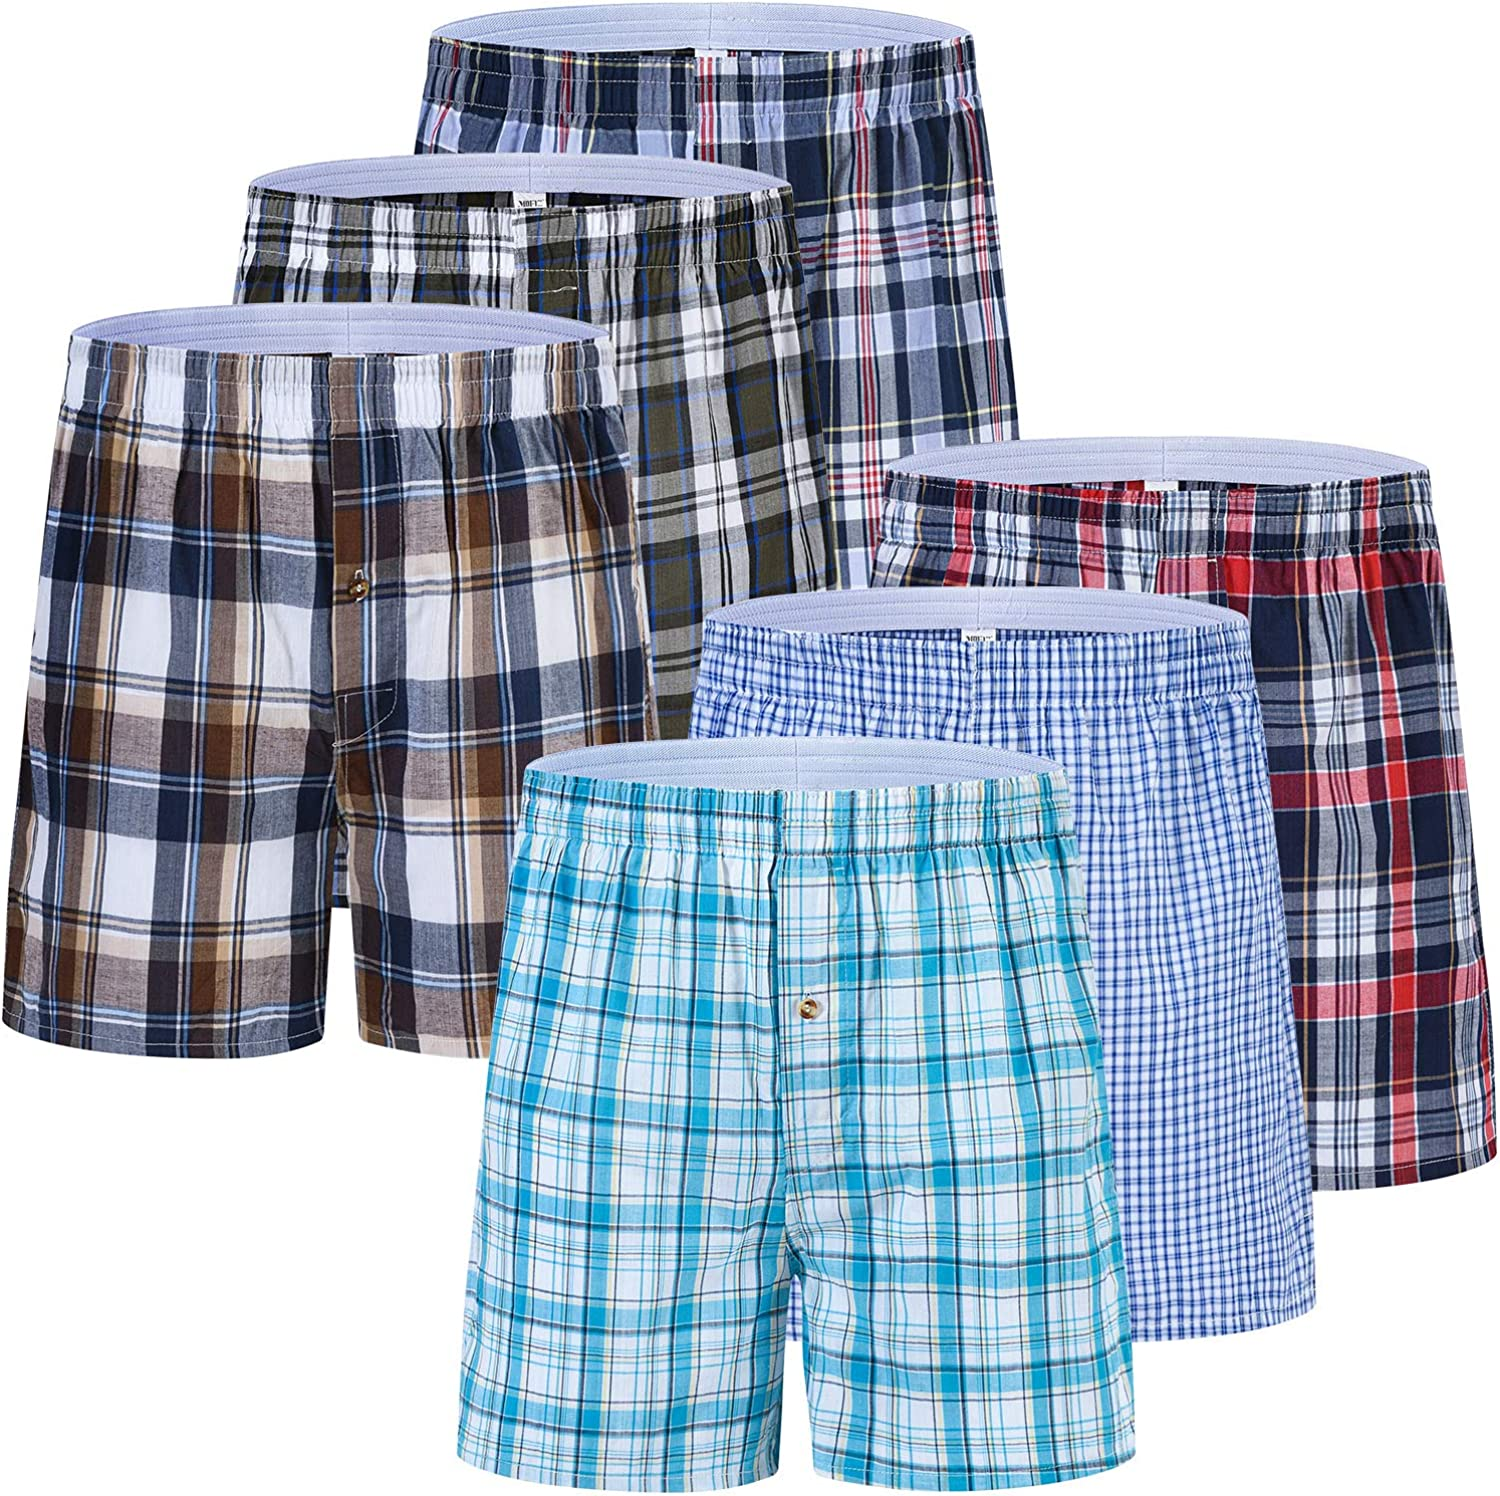 Mens Boxer Shorts Underwear Sleepwear 100% Cotton Plaid Tartan Open Fly Woven Classic Wear 3-Pack 6-Pack